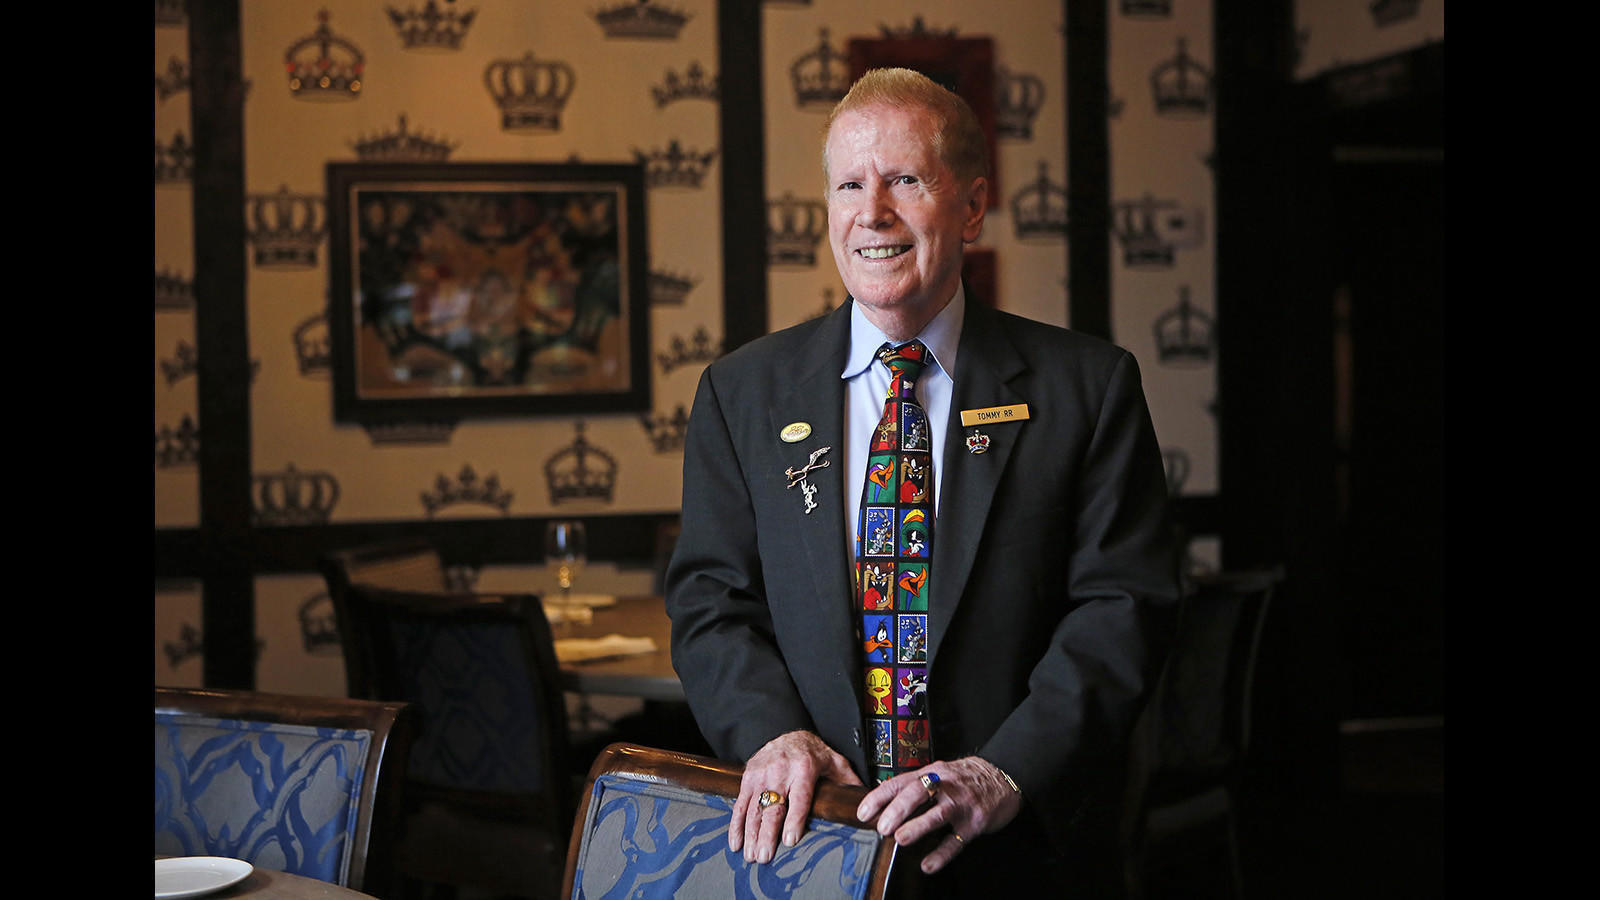 Five Crowns ambassador celebrates 50 years at Corona del Mar restaurant | The Los Angeles Times